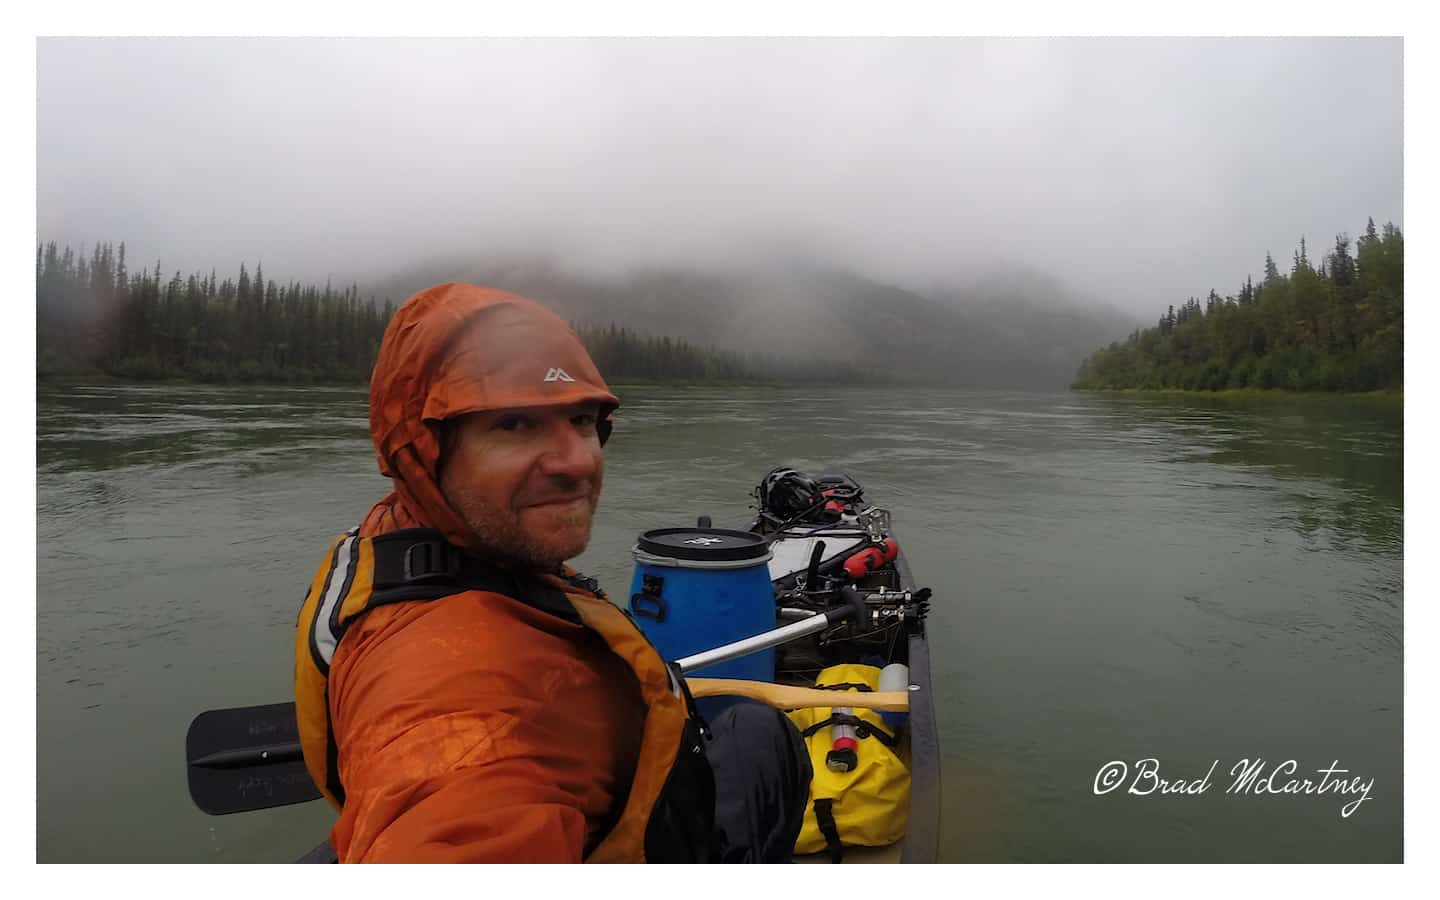 overcast and rainy yukon river